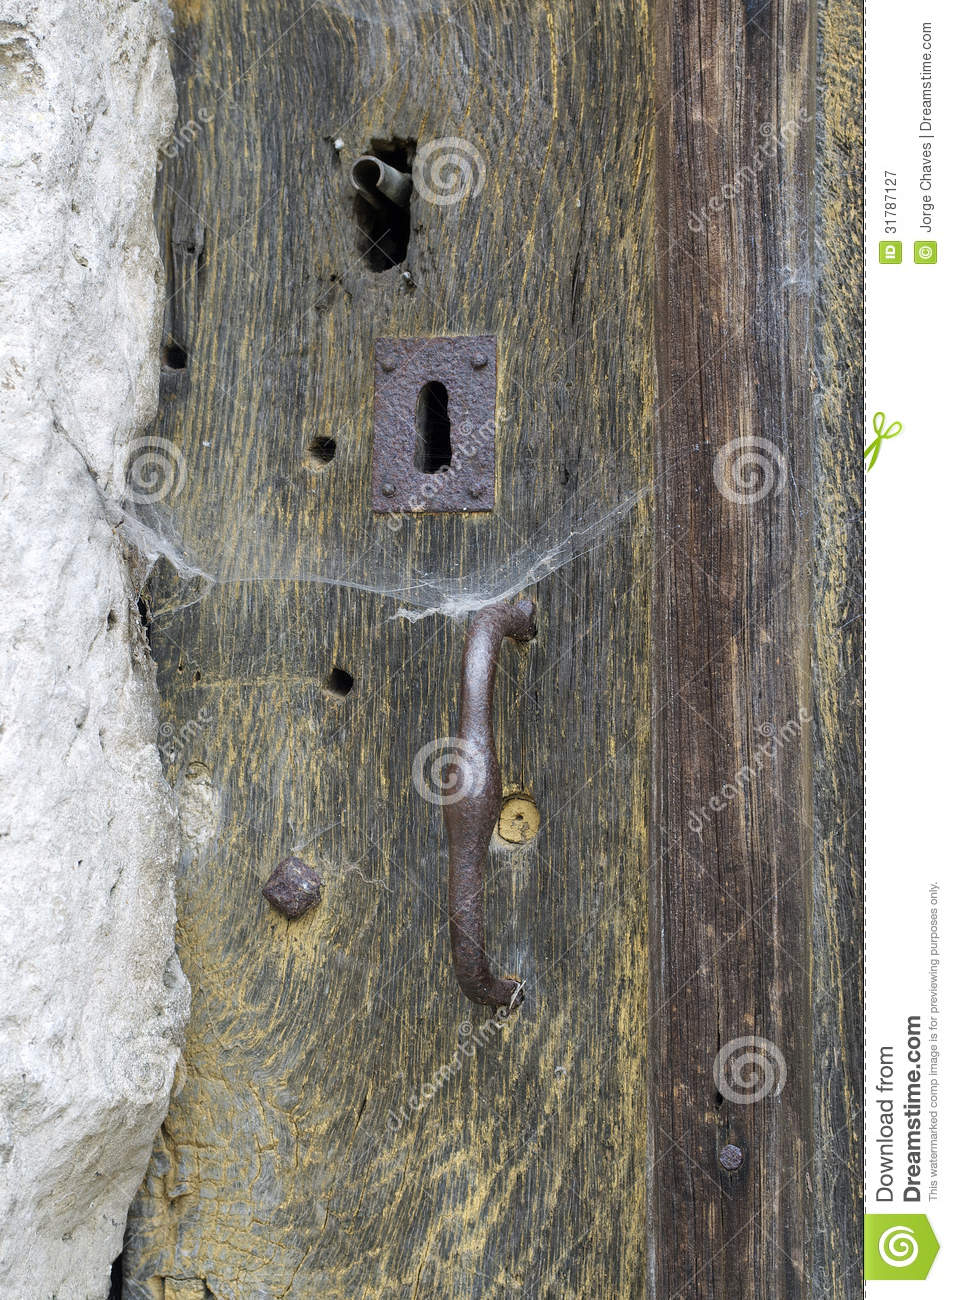 Lock Royalty Free Stock Photography Image 31787127